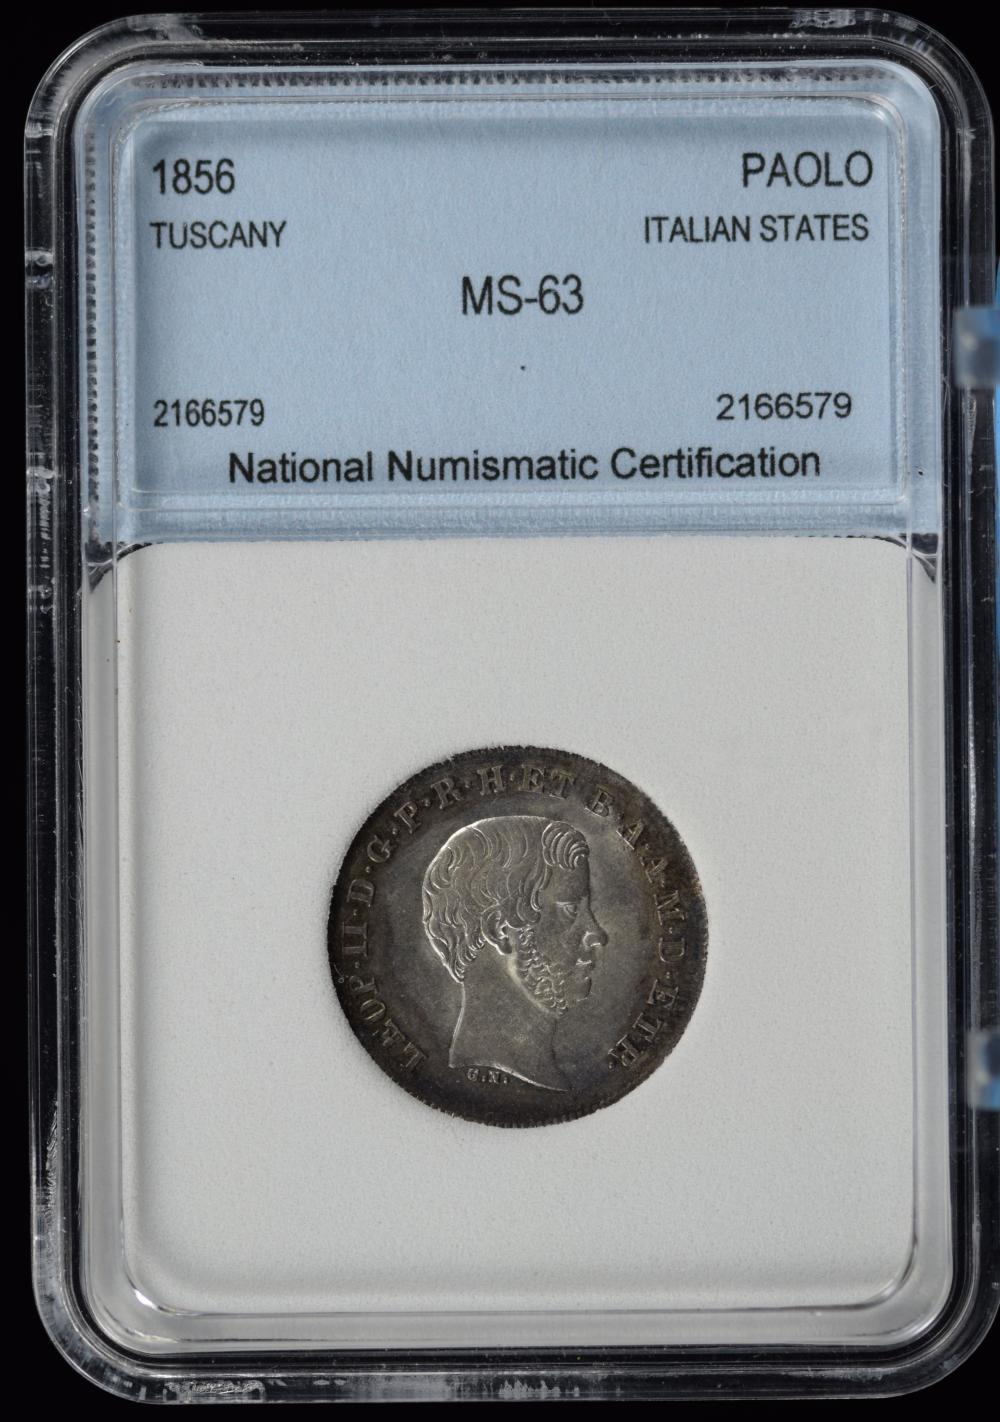 1856 Tuscany Italian Stated Silver Paolo NNC 63 Nice Tone Very Scarce